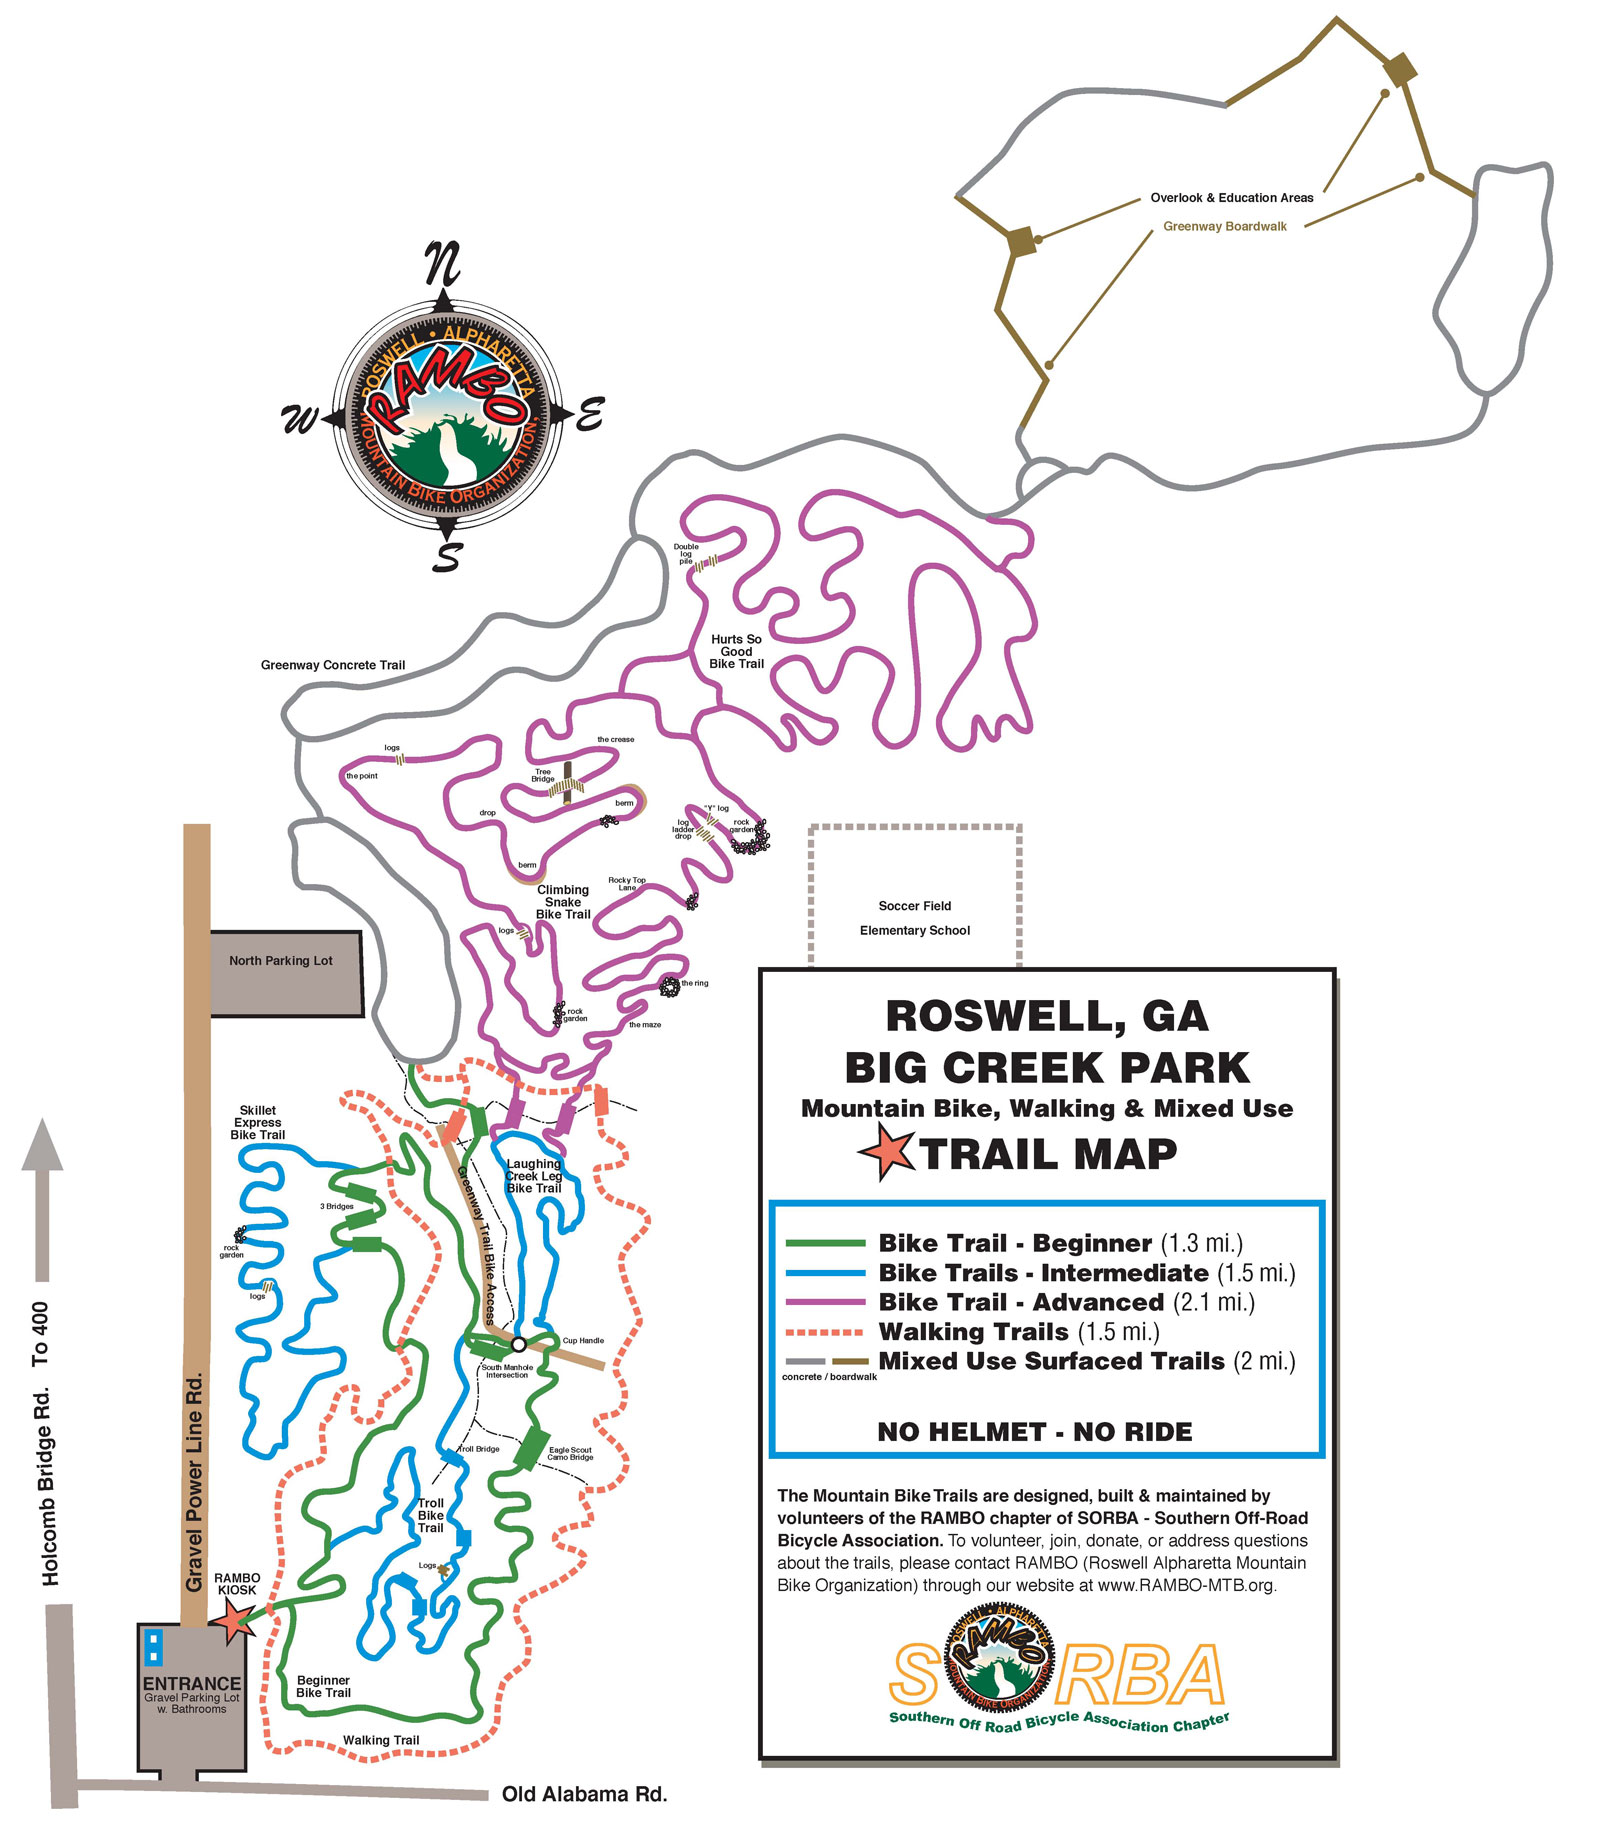 fruita mountain bike trail map with Mountain Bike Trail Review Big Creek In Georgia on Photo together with Attraction Review G60776 D145624 Reviews Mary s Loop Fruita Colorado together with Locals Guide Mountain Biking Fruita additionally Photo further Photo.